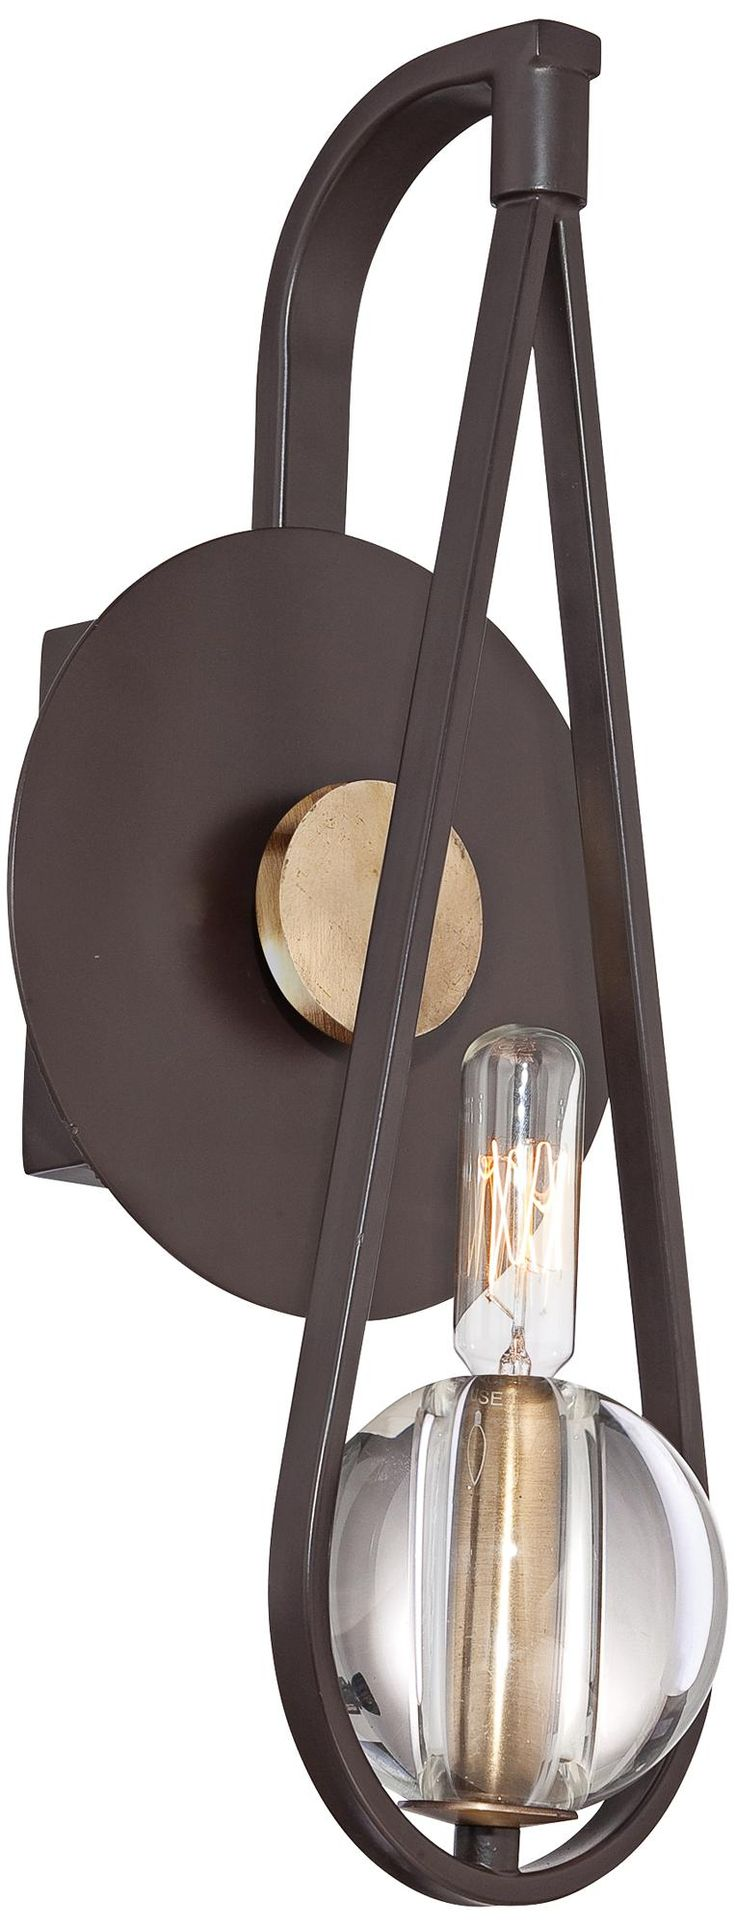 Best 25 bronze wall sconce ideas on pinterest bathroom sconce quoizel uptown seaport 15 high bronze wall sconce amipublicfo Image collections